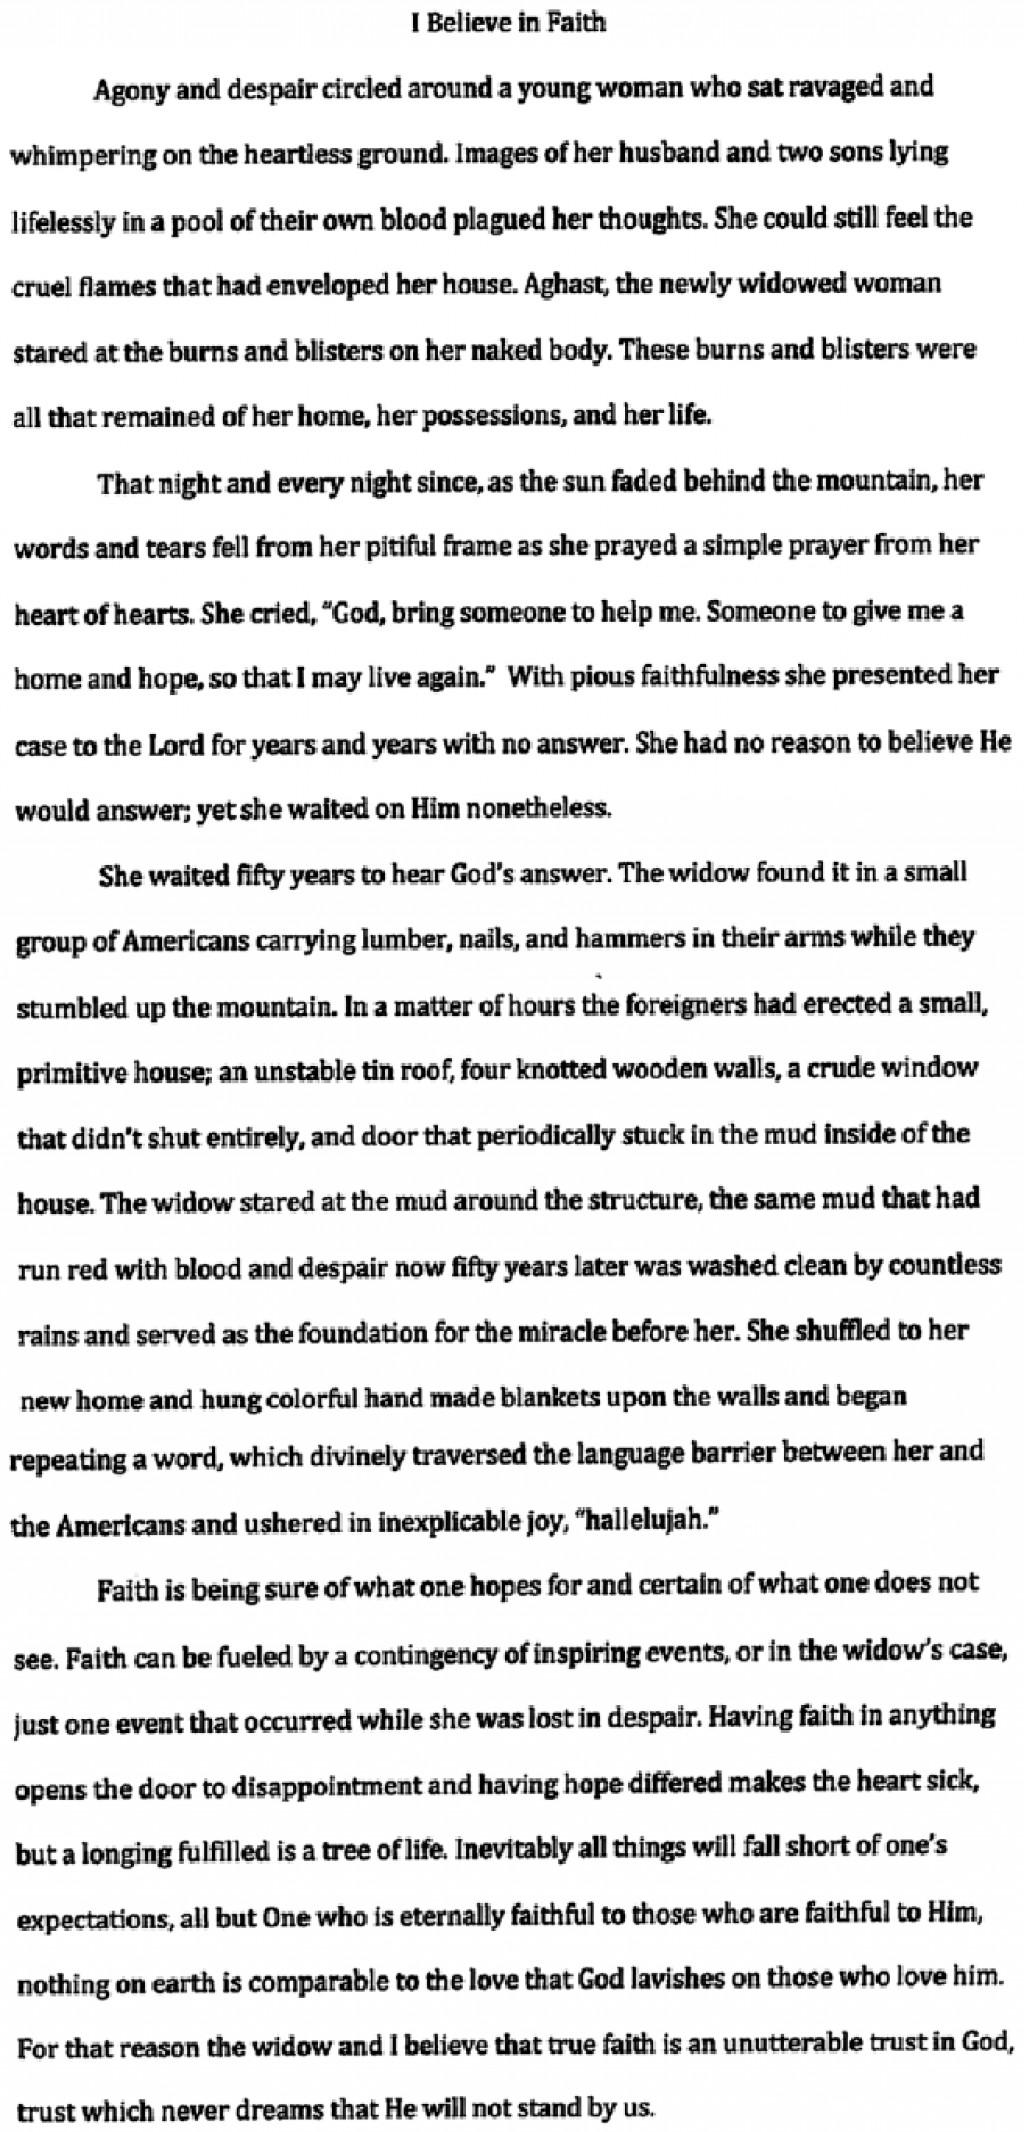 004 Is There One True Religion Essay Example Charlies This I Unique Large